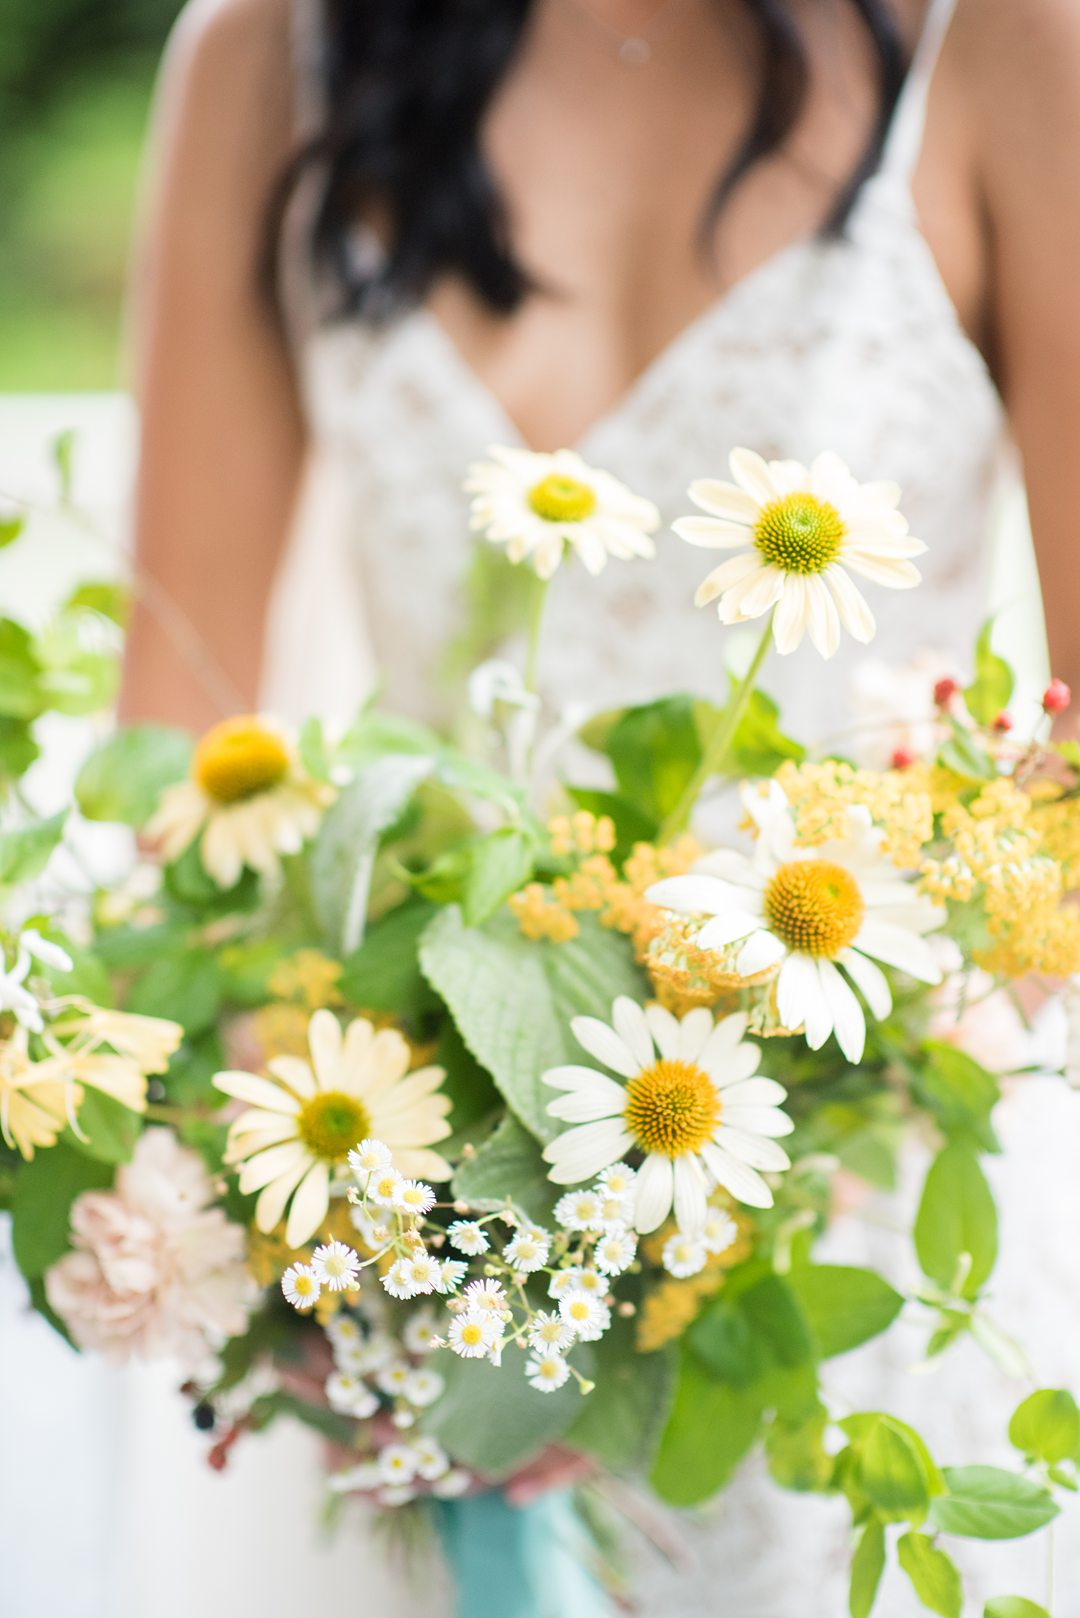 A wildflower bridal bouquet with berries, daisies and vines photographed by Mikkel Paige Photography and created by Mood Fleuriste. The couple eloped when COVID-19 changed their original plan. #mikkelpaige #wildflowerbouquet